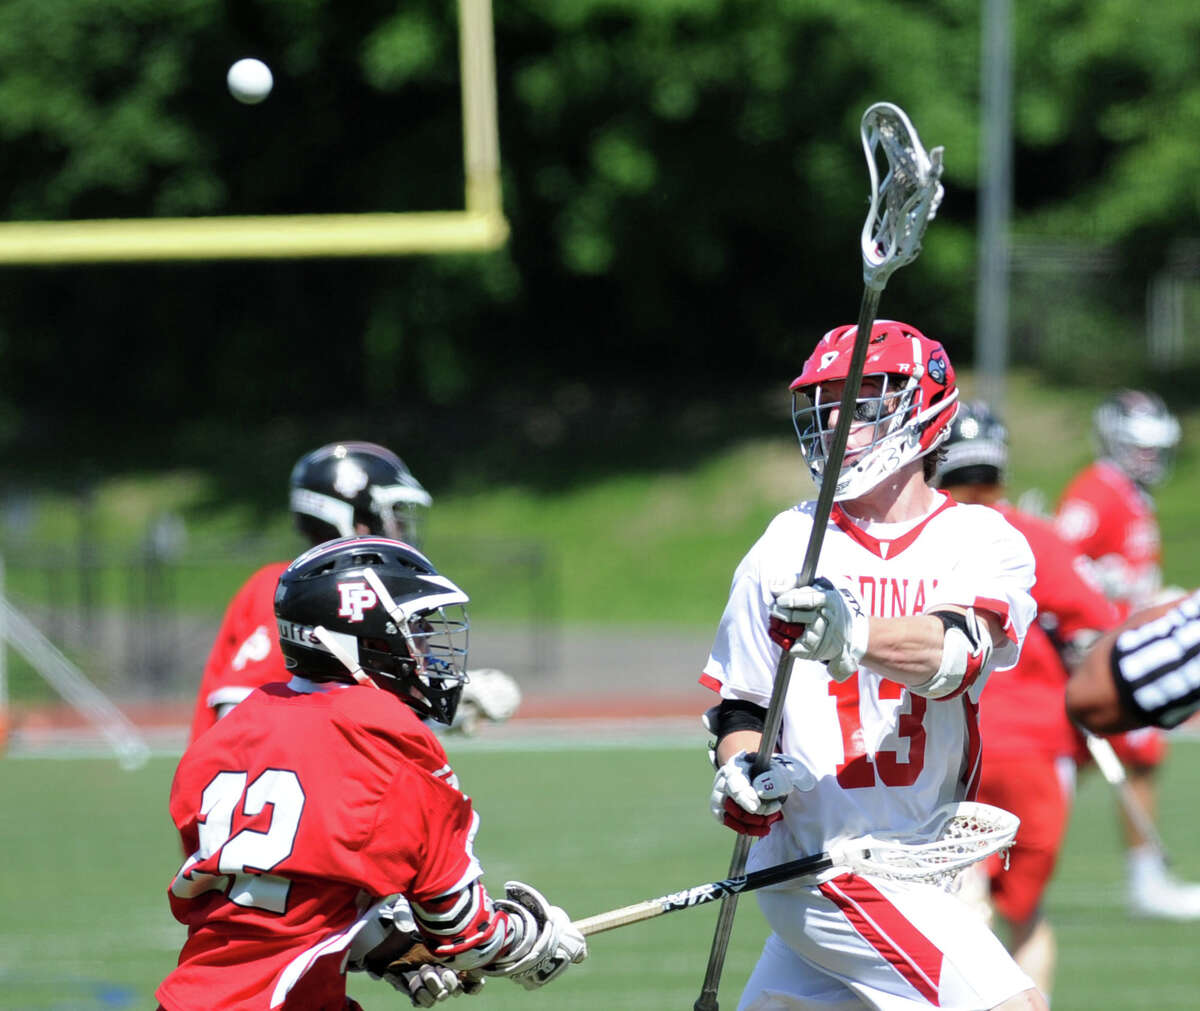 At right, Jack Nail of Greenwich (#13) passes as John Edmonds (#22) of Fairfield Prep defends during the Class L boys high school lacrosse quarterfinal match between Fairfield Prep and Greenwich High School at Greenwich, Saturday, June 7, 2014. Greenwich won the match, 9-8, advancing to the semi-final.